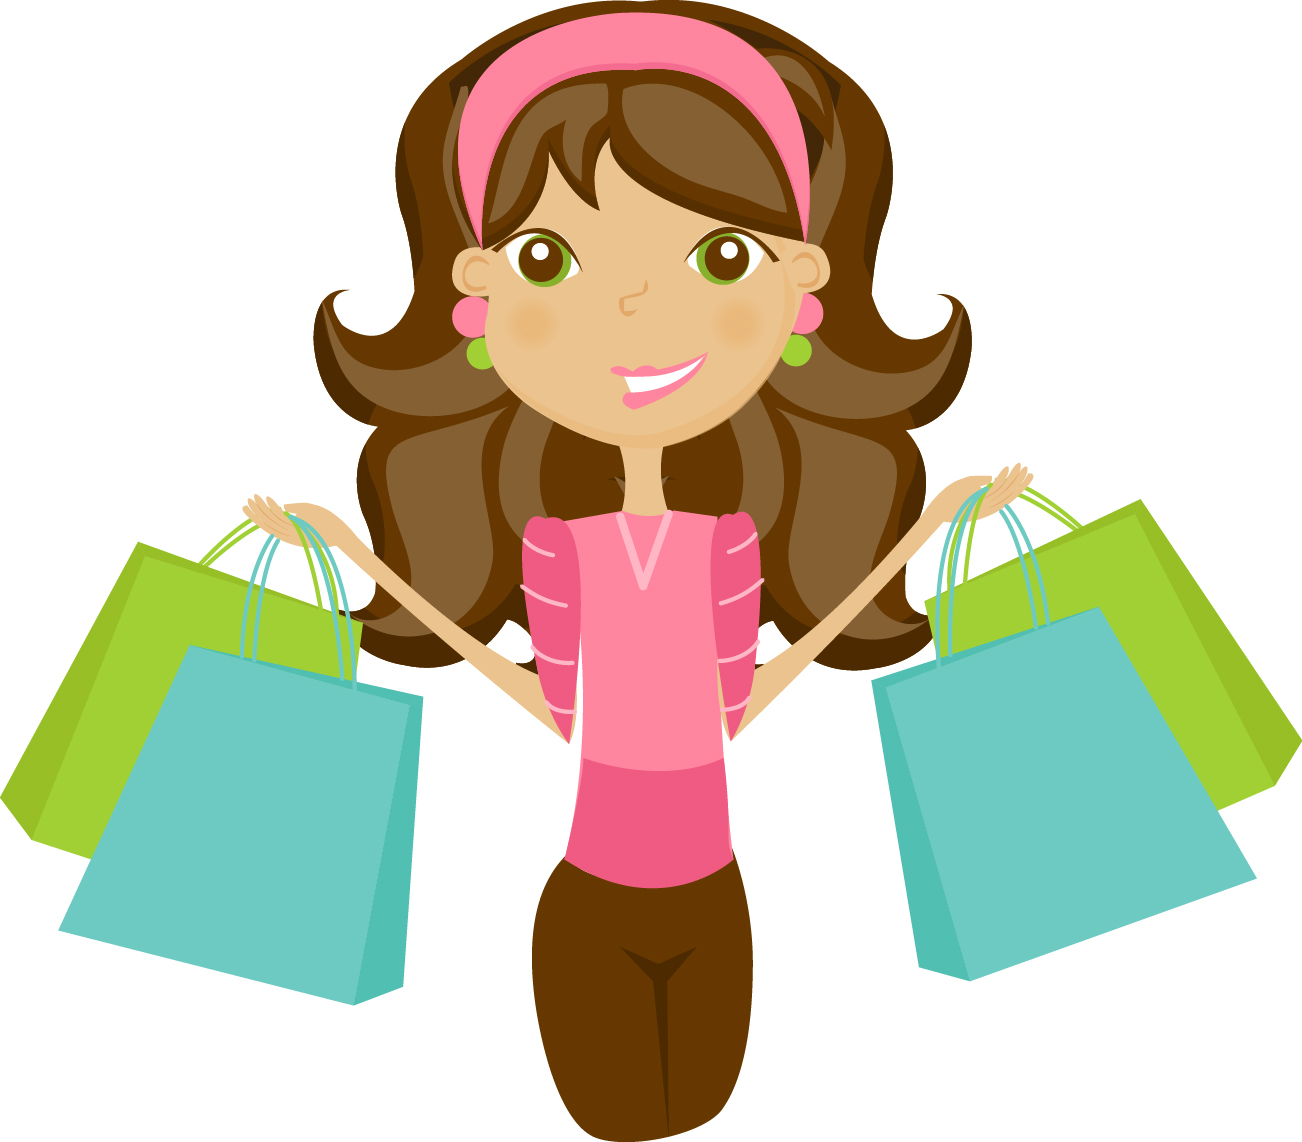 Free Shopping Cliparts, Download Free Clip Art, Free Clip.